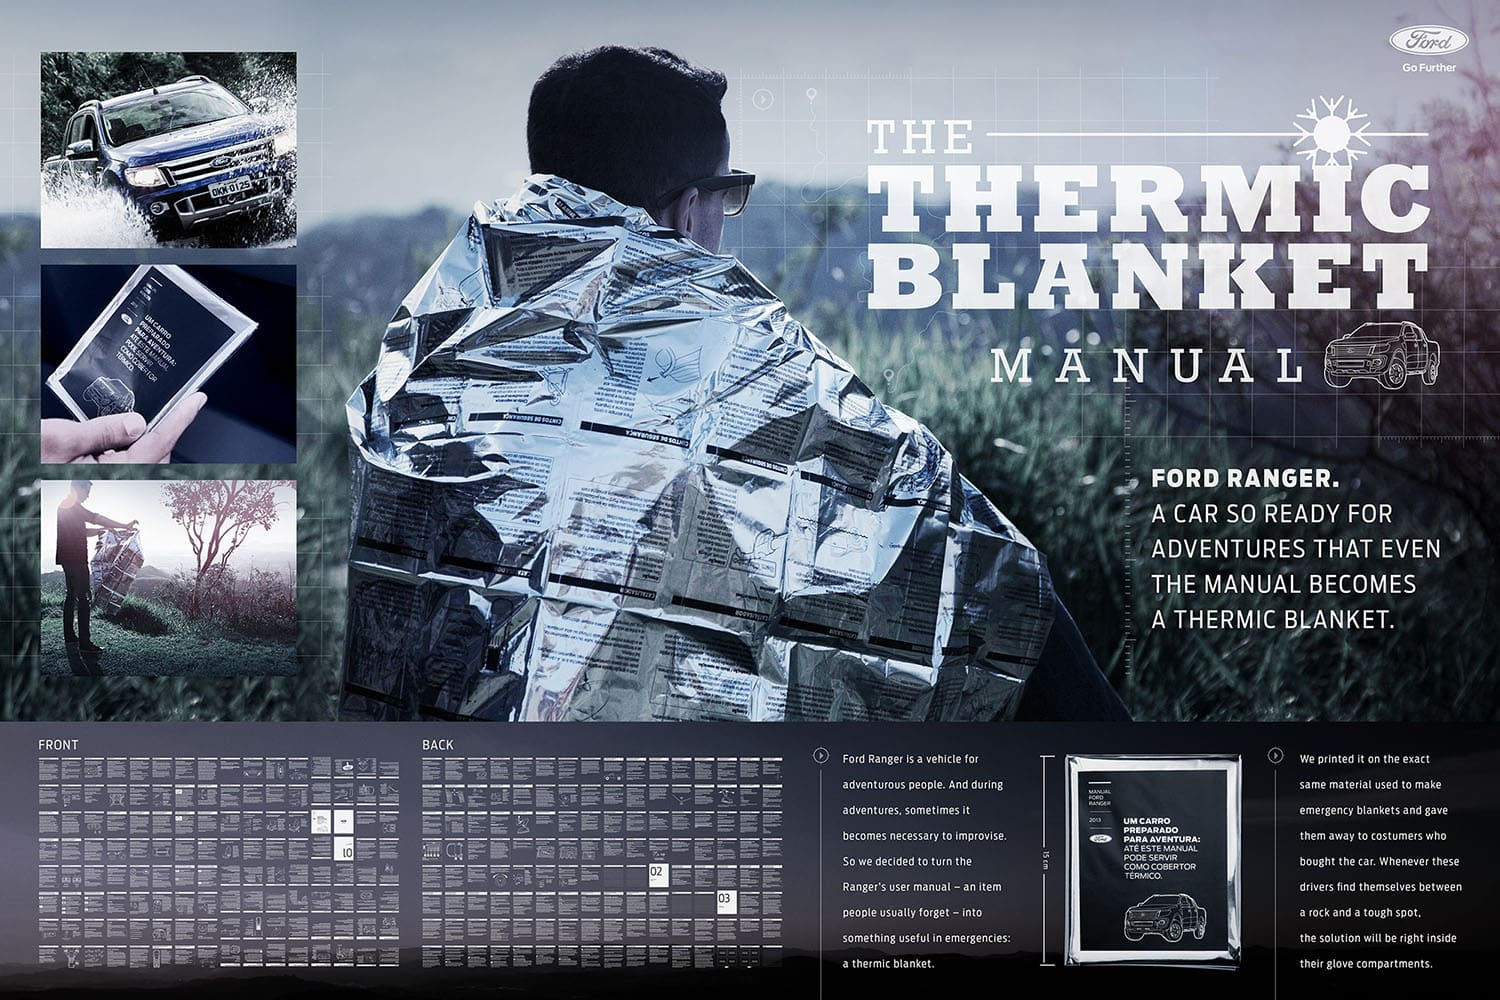 The Thermic Blanket Manual